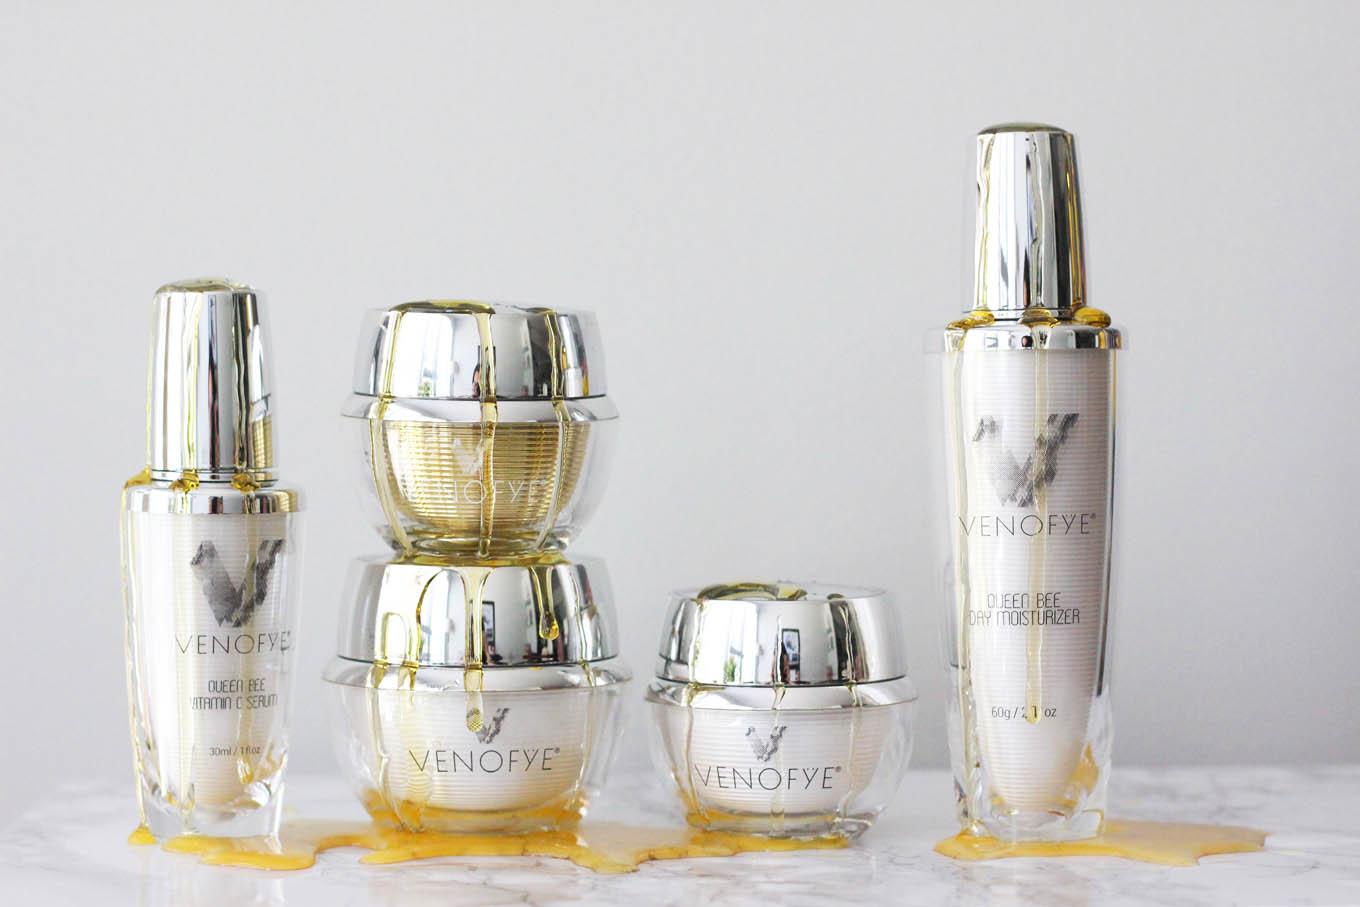 Venofye Queen Bee Skincare Review | Glass of Glam | A DC Style Blog